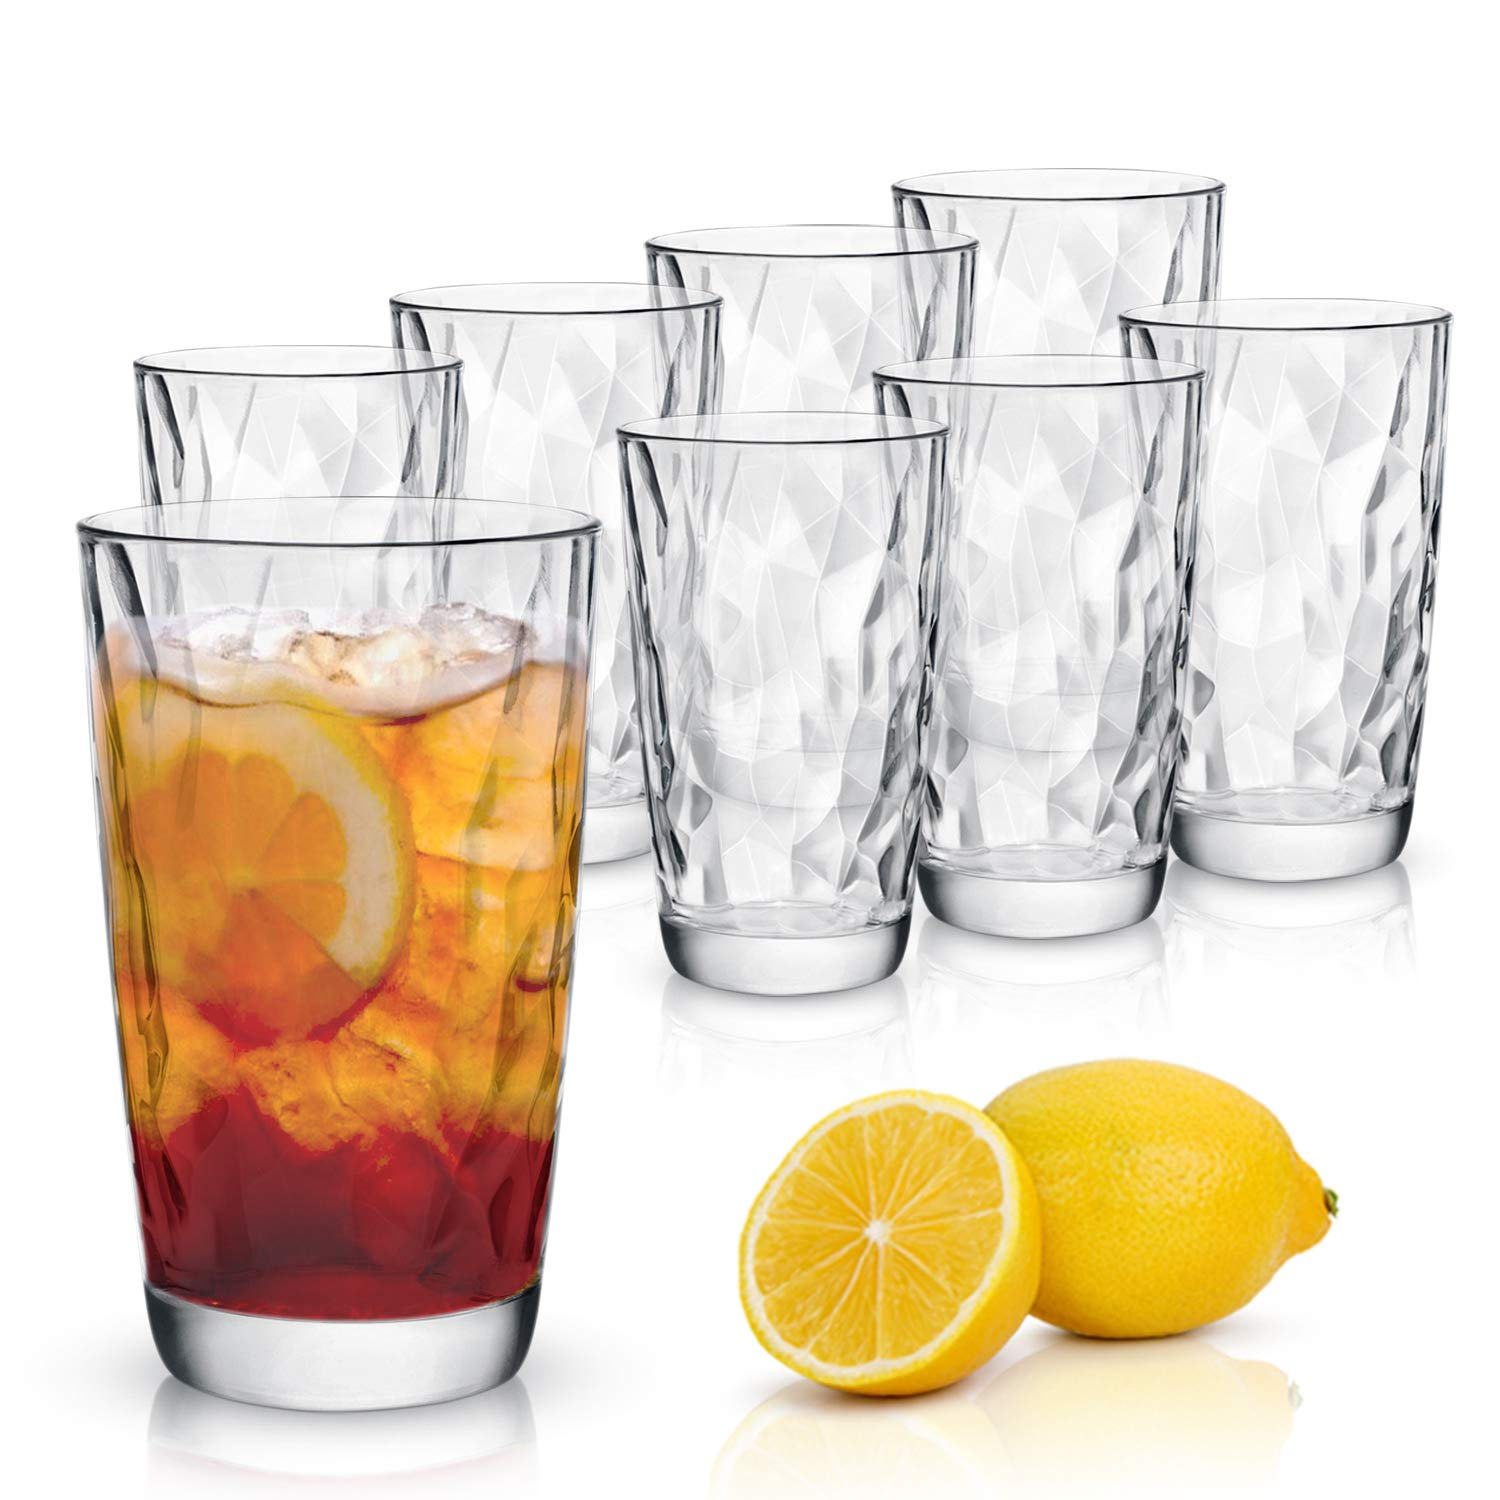 Emenest Clear Cooler Drinking Glasses (Set of 8) | 15.75-oz Real Glassware with Heavy Base | 8 Highball Drinkware Tumbler Set For Water, Whiskey, Cocktails | Best Kitchen Gift